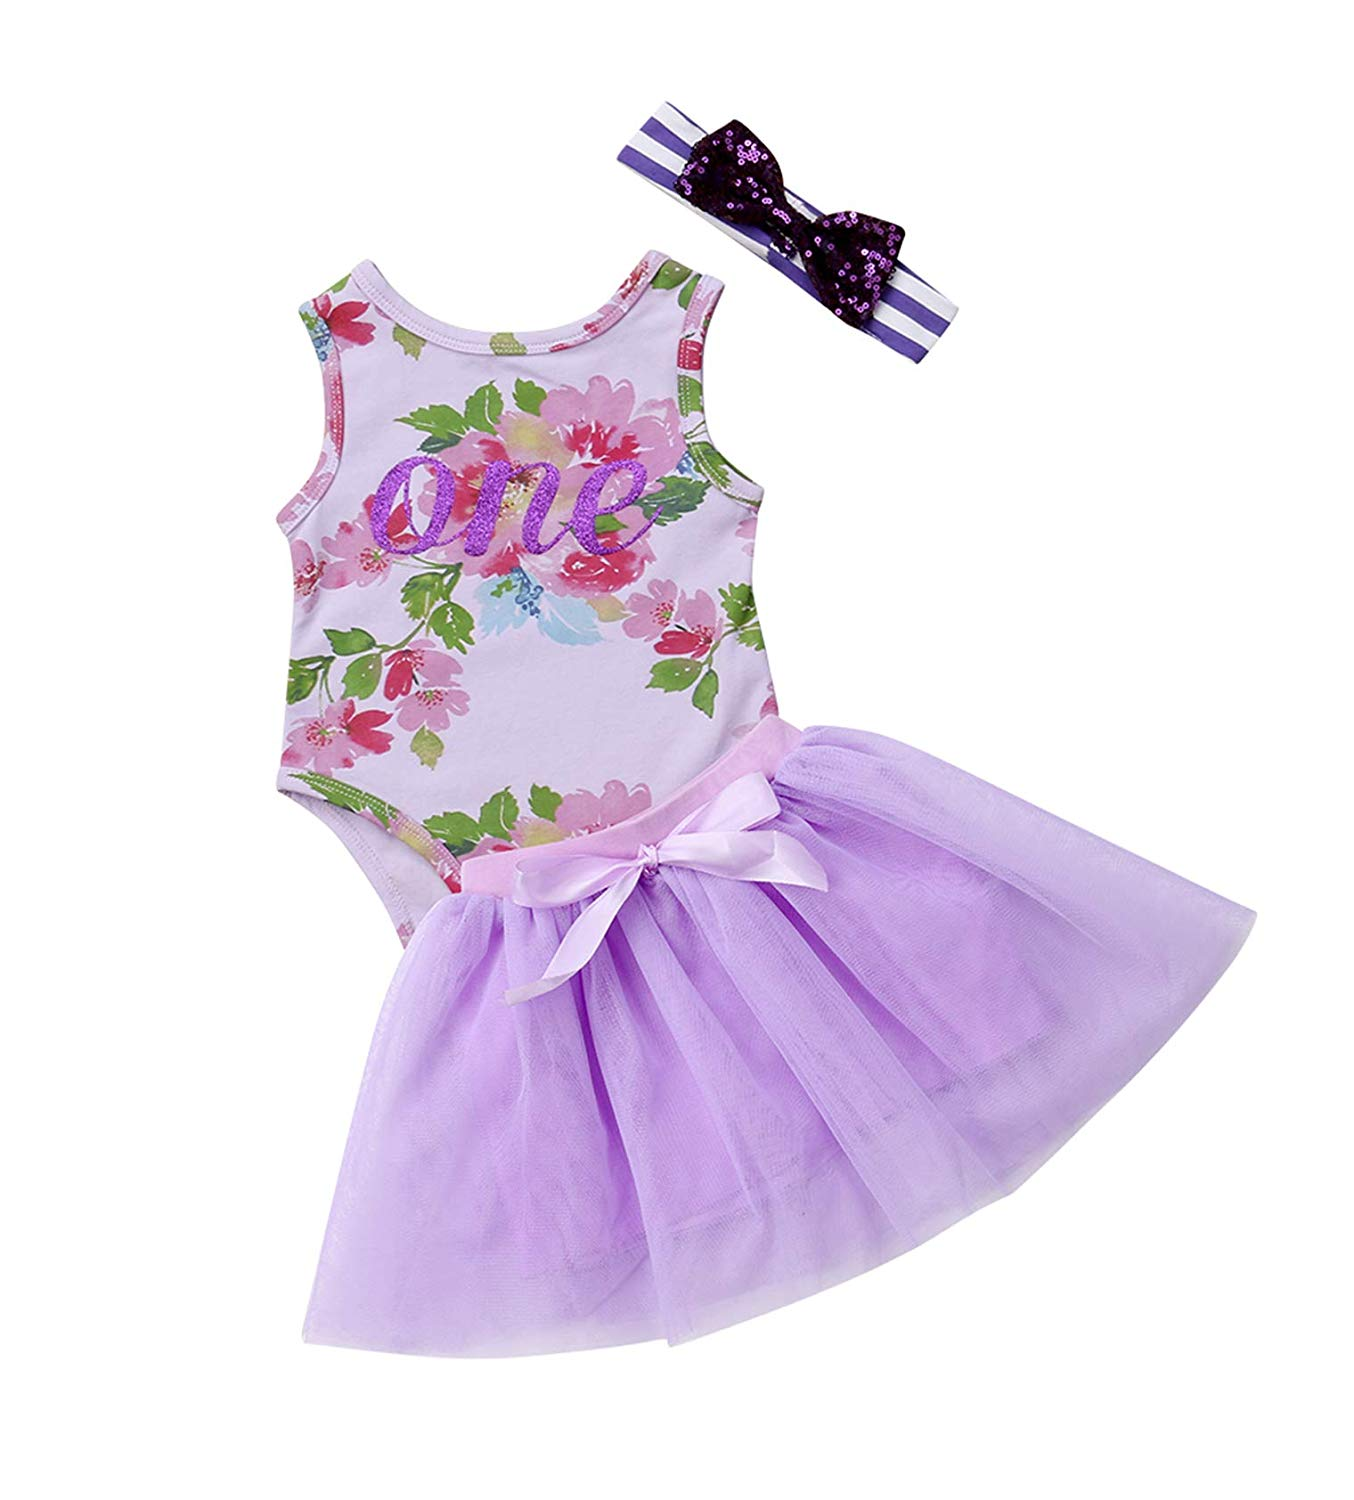 66b764da67eff Urkutoba Purple Floral Vest Tops+Purple Lace Tulle Tunic Tutu Dress+Sequins  Headband 3pcs · Summer Style 2015 Women Shirts Long Sleeve Purple White  Chiffon ...